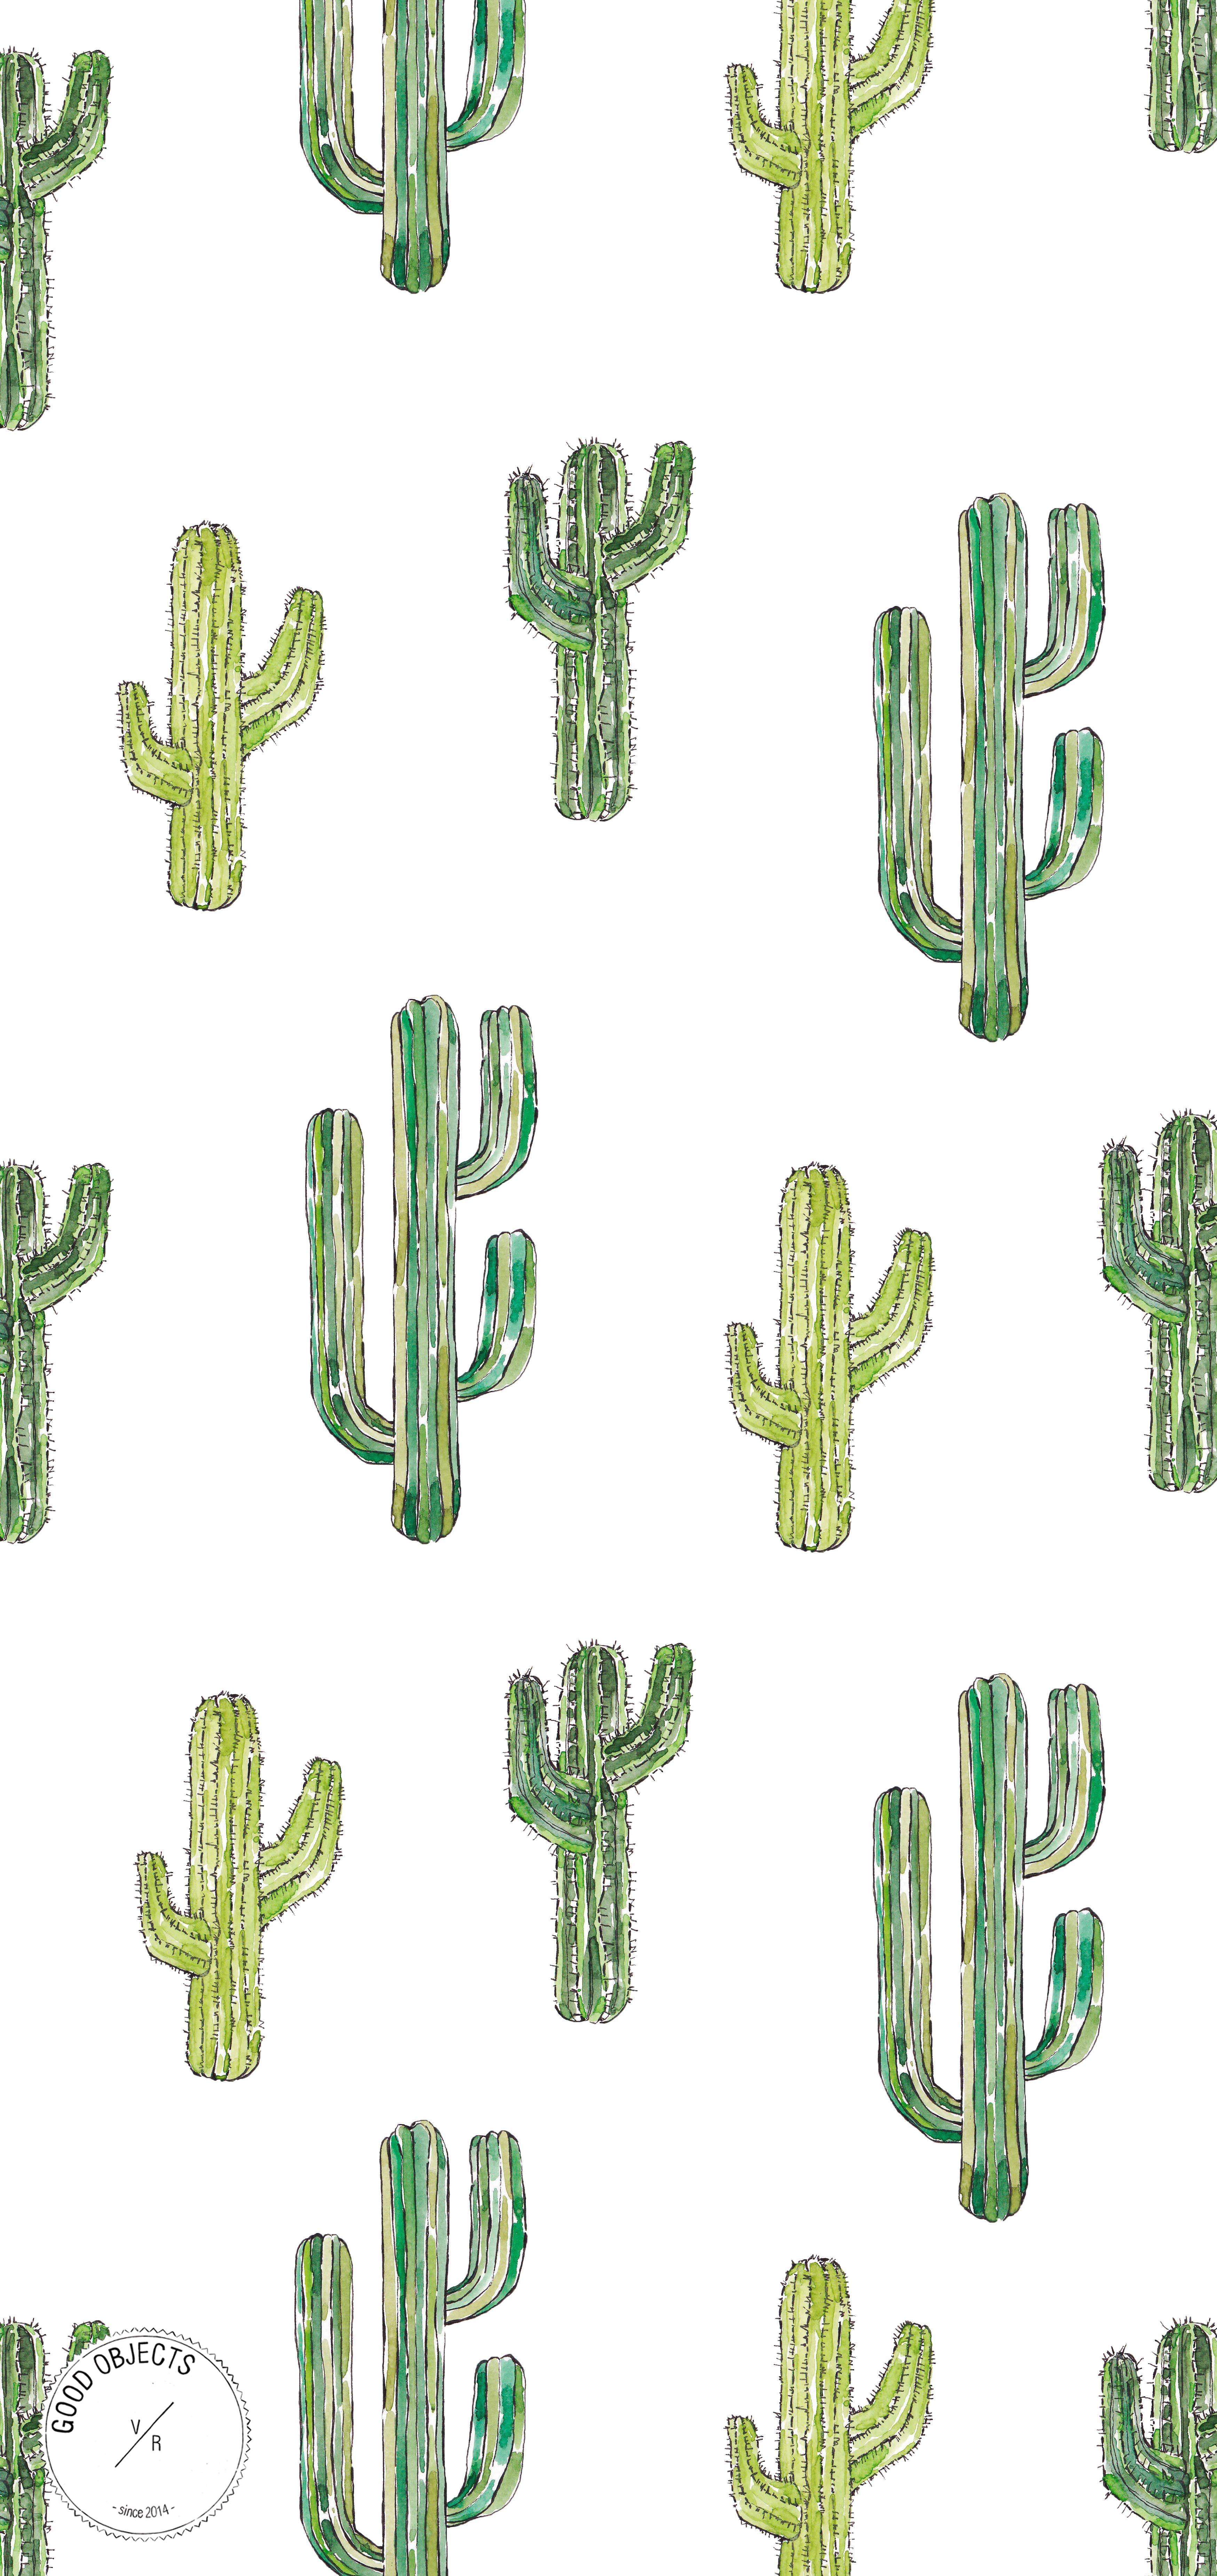 Shop Now Good Objects Cactus Watercolor Art Print Watercolor